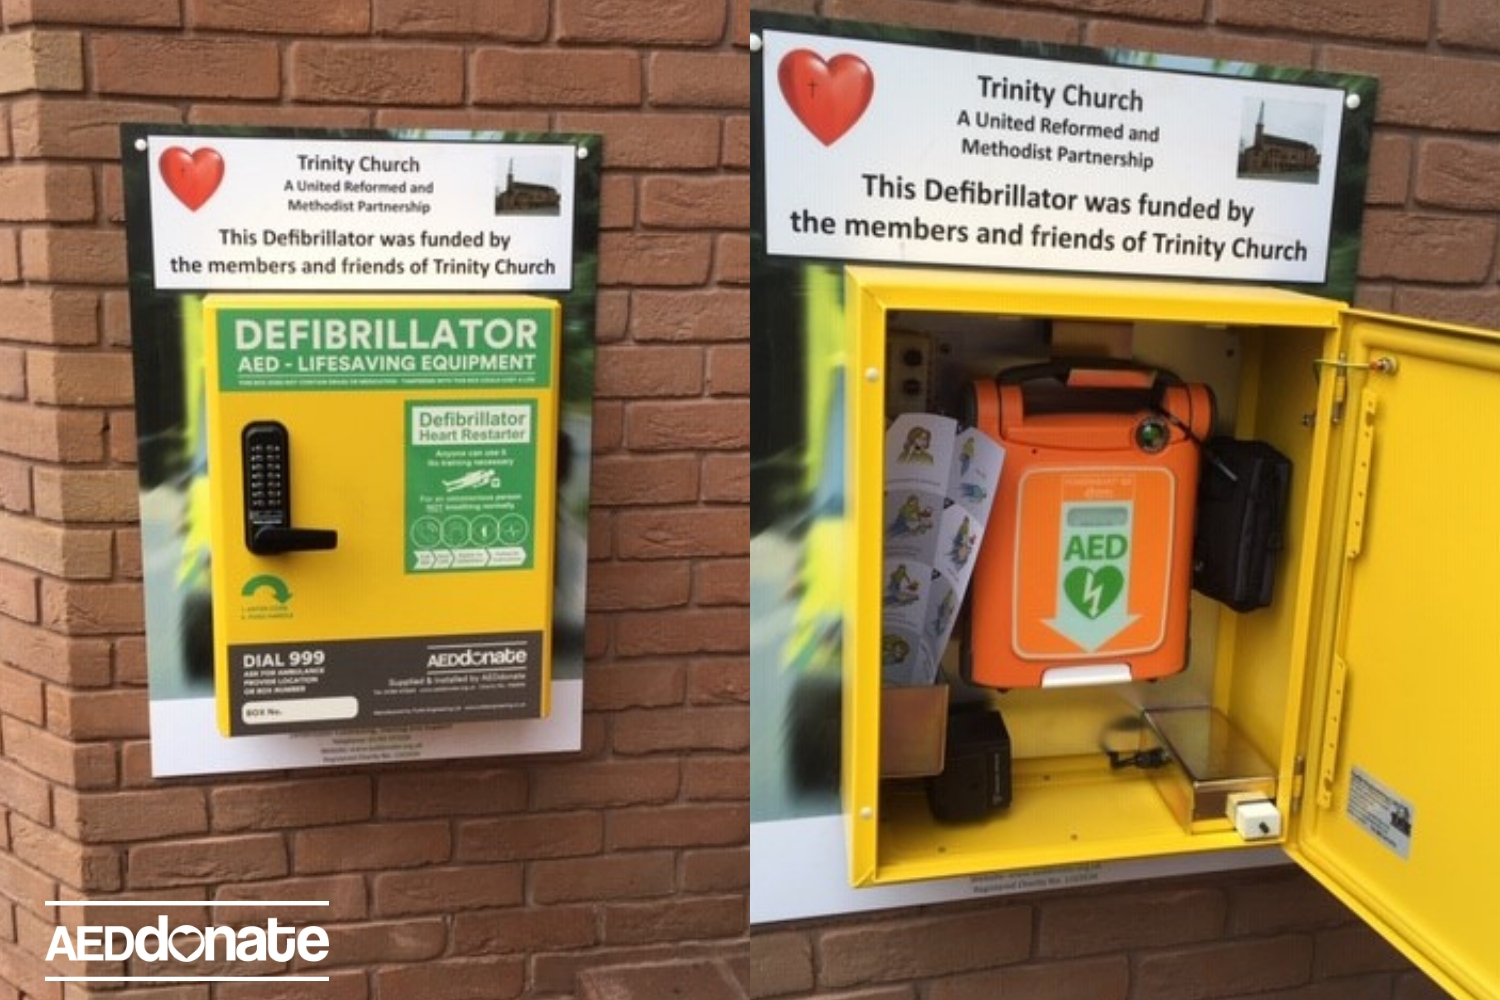 Trinity Church in Stafford has life-saving equipment installed